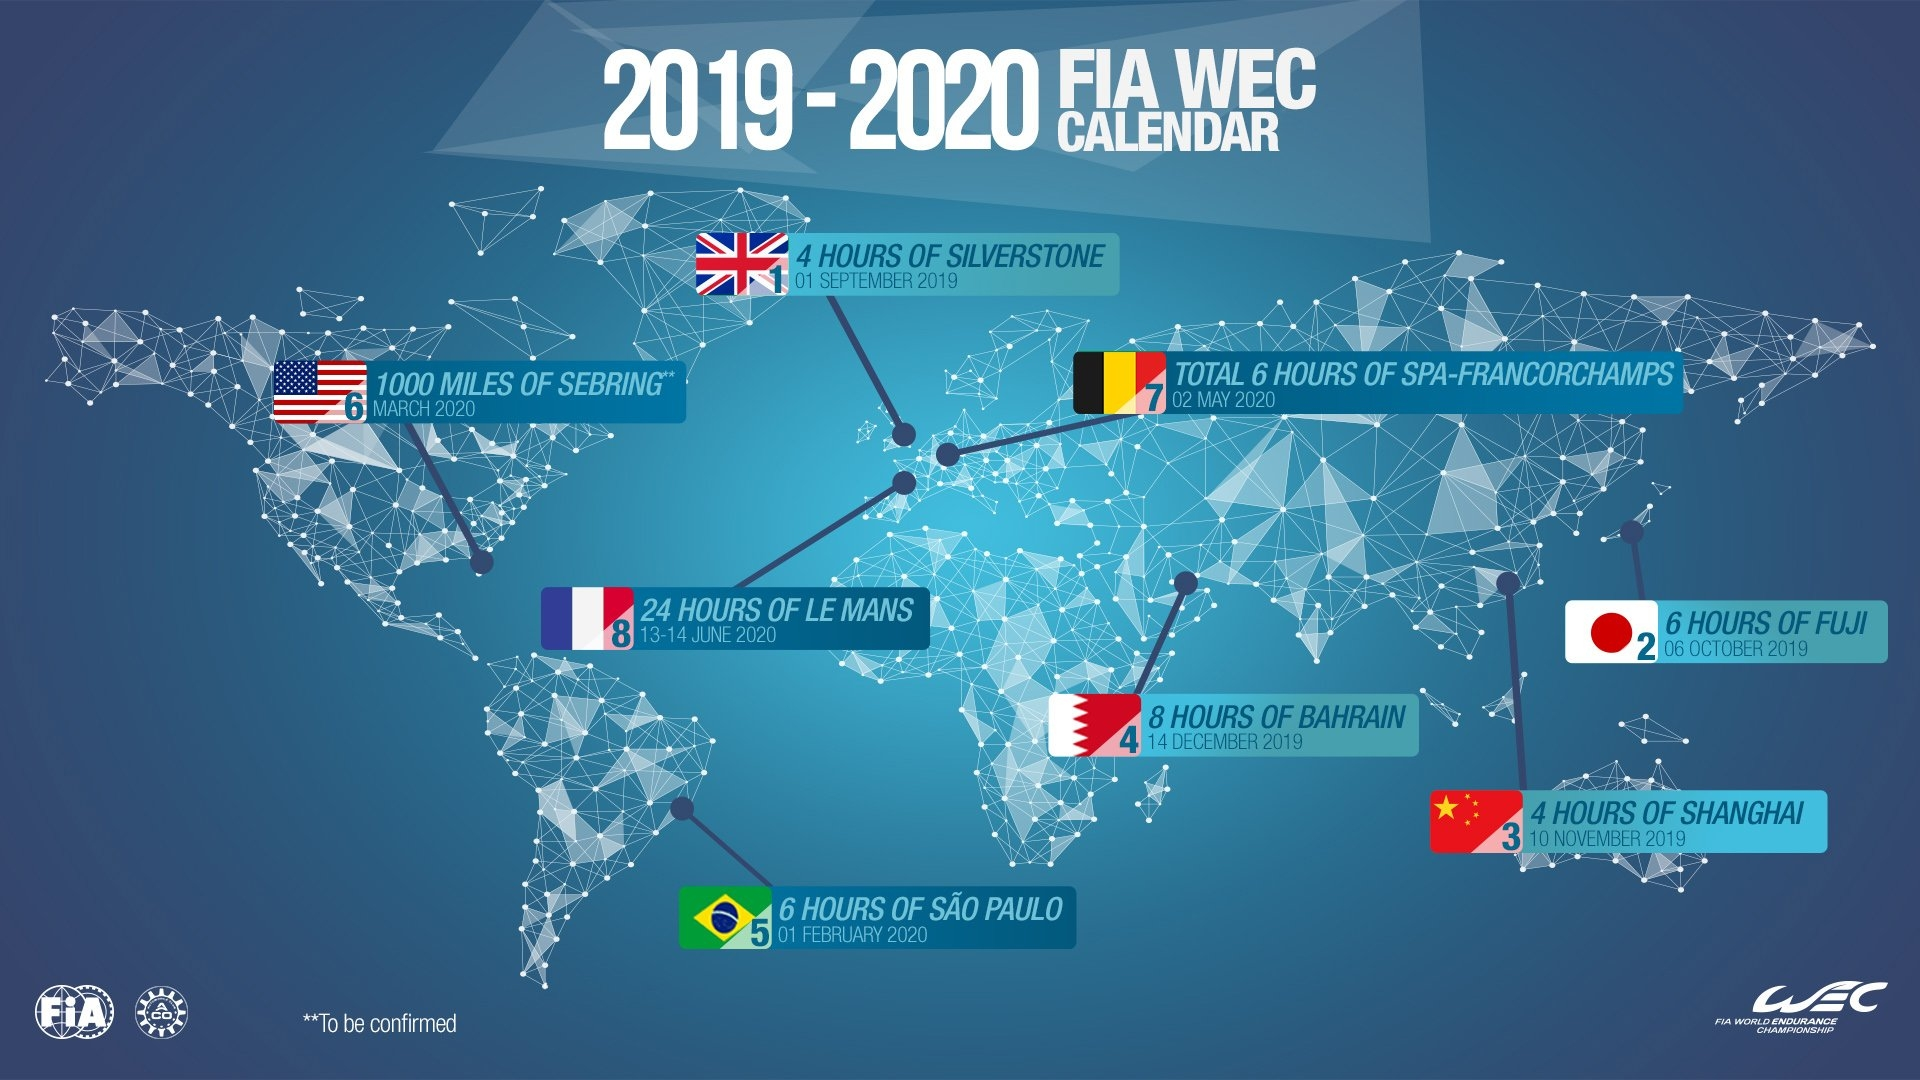 Wec - 2019/2020 Fia Wec Calendar Is Approved | Federation Fia Formula E Calendar 2019